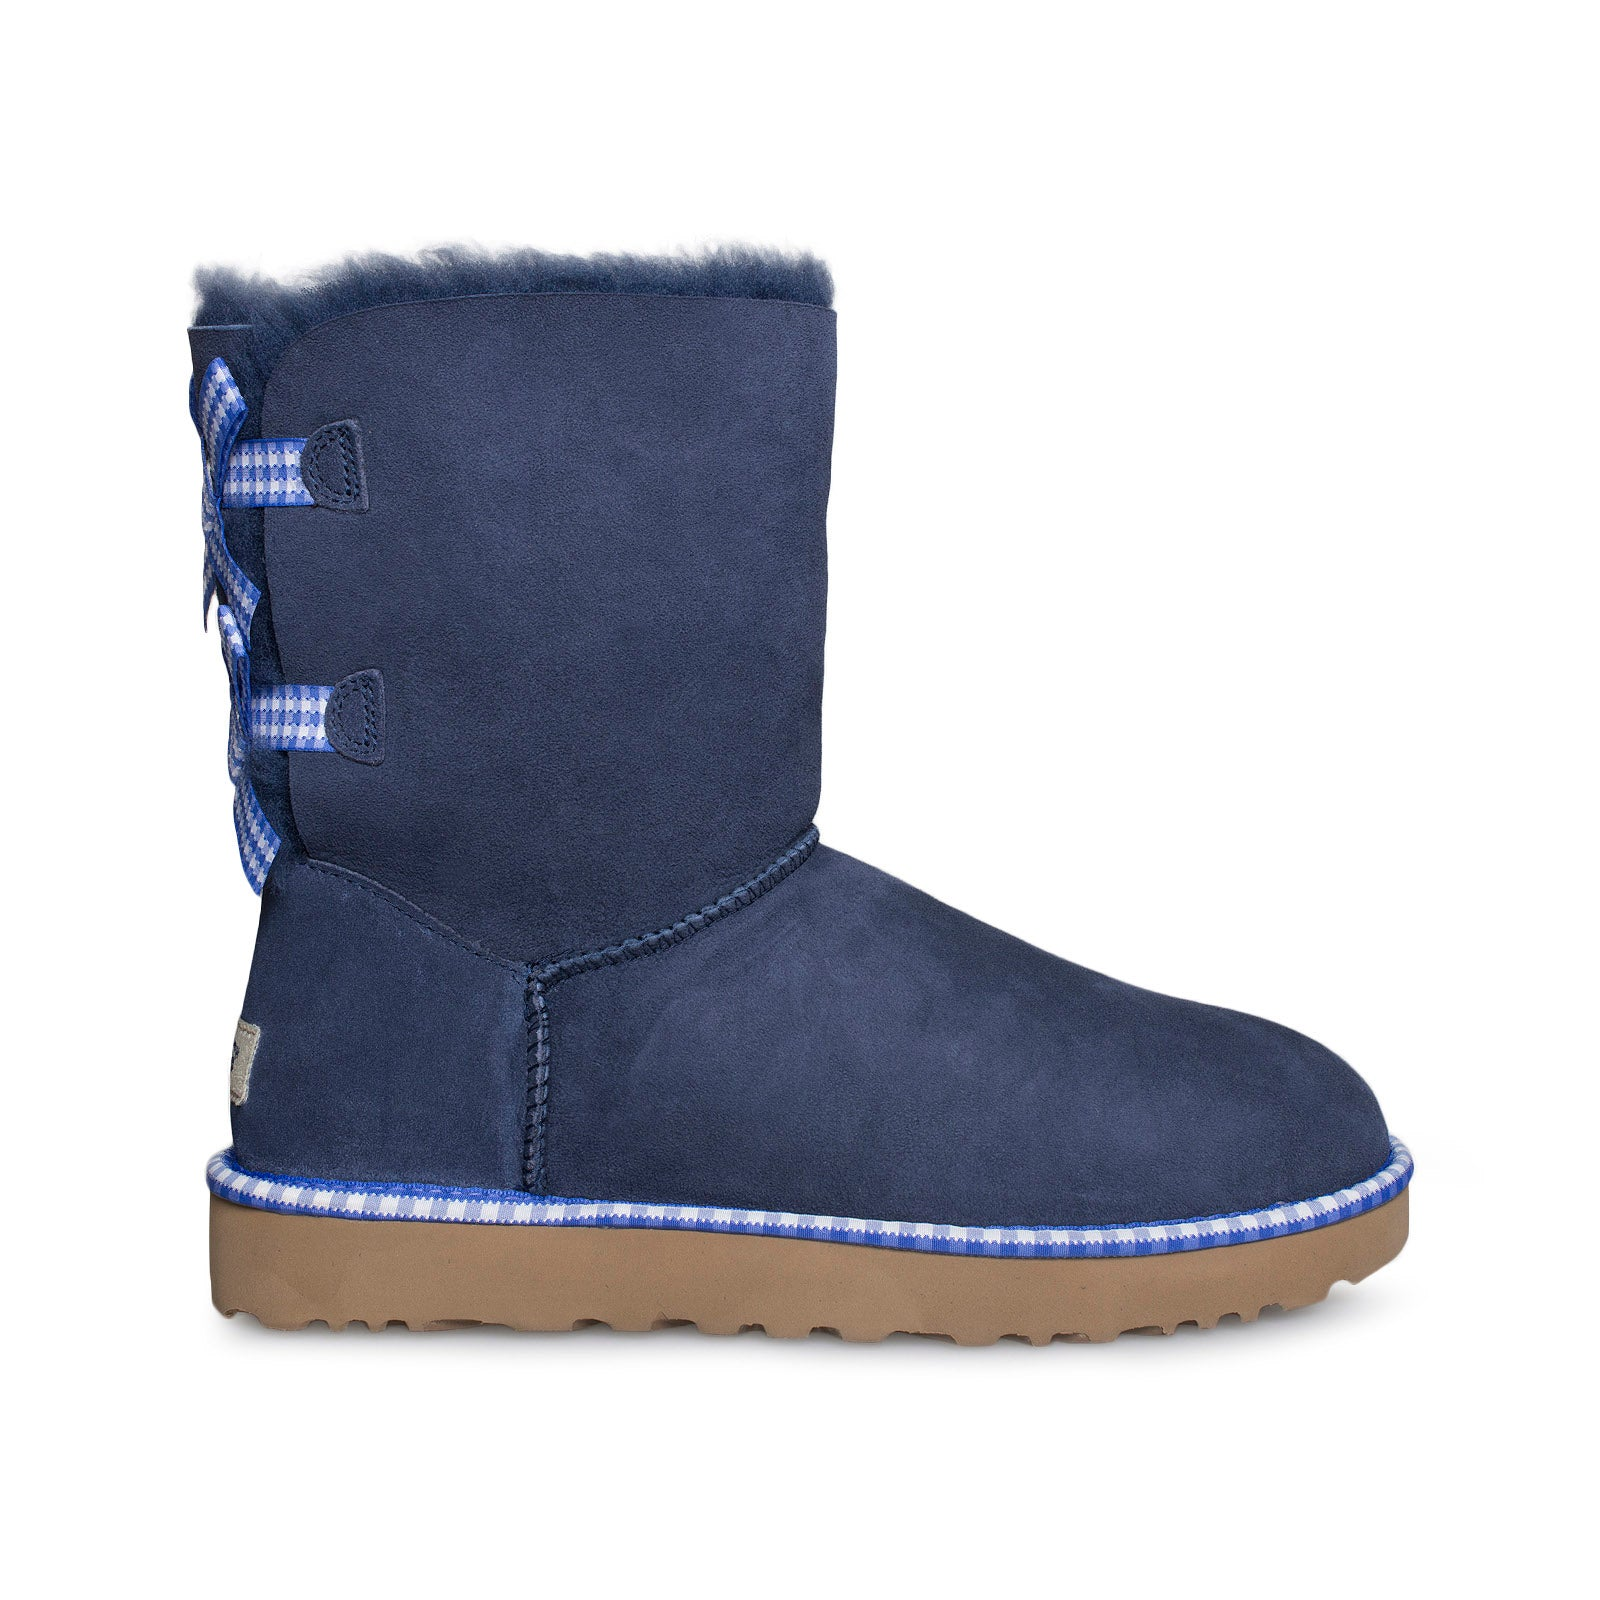 191015290b3 UGG Bailey Bow Gingham Navy Boots - Women's